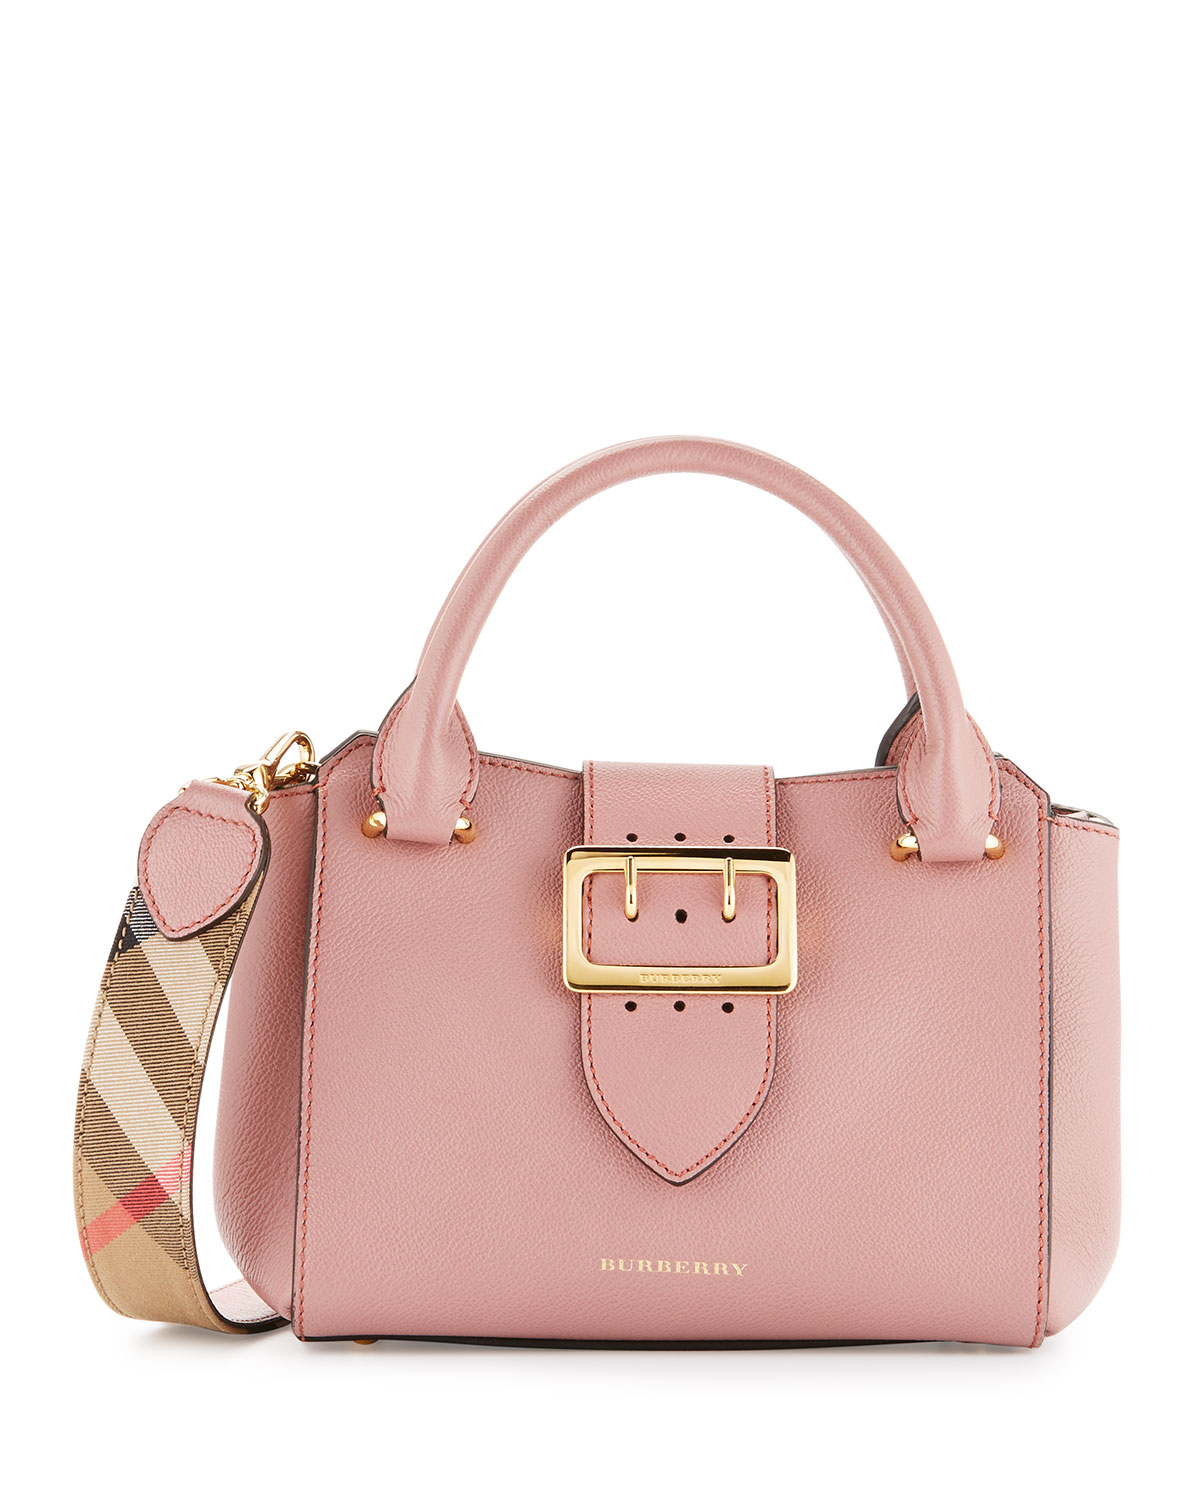 Buckle Small Leather Tote Bag Dusty Pink